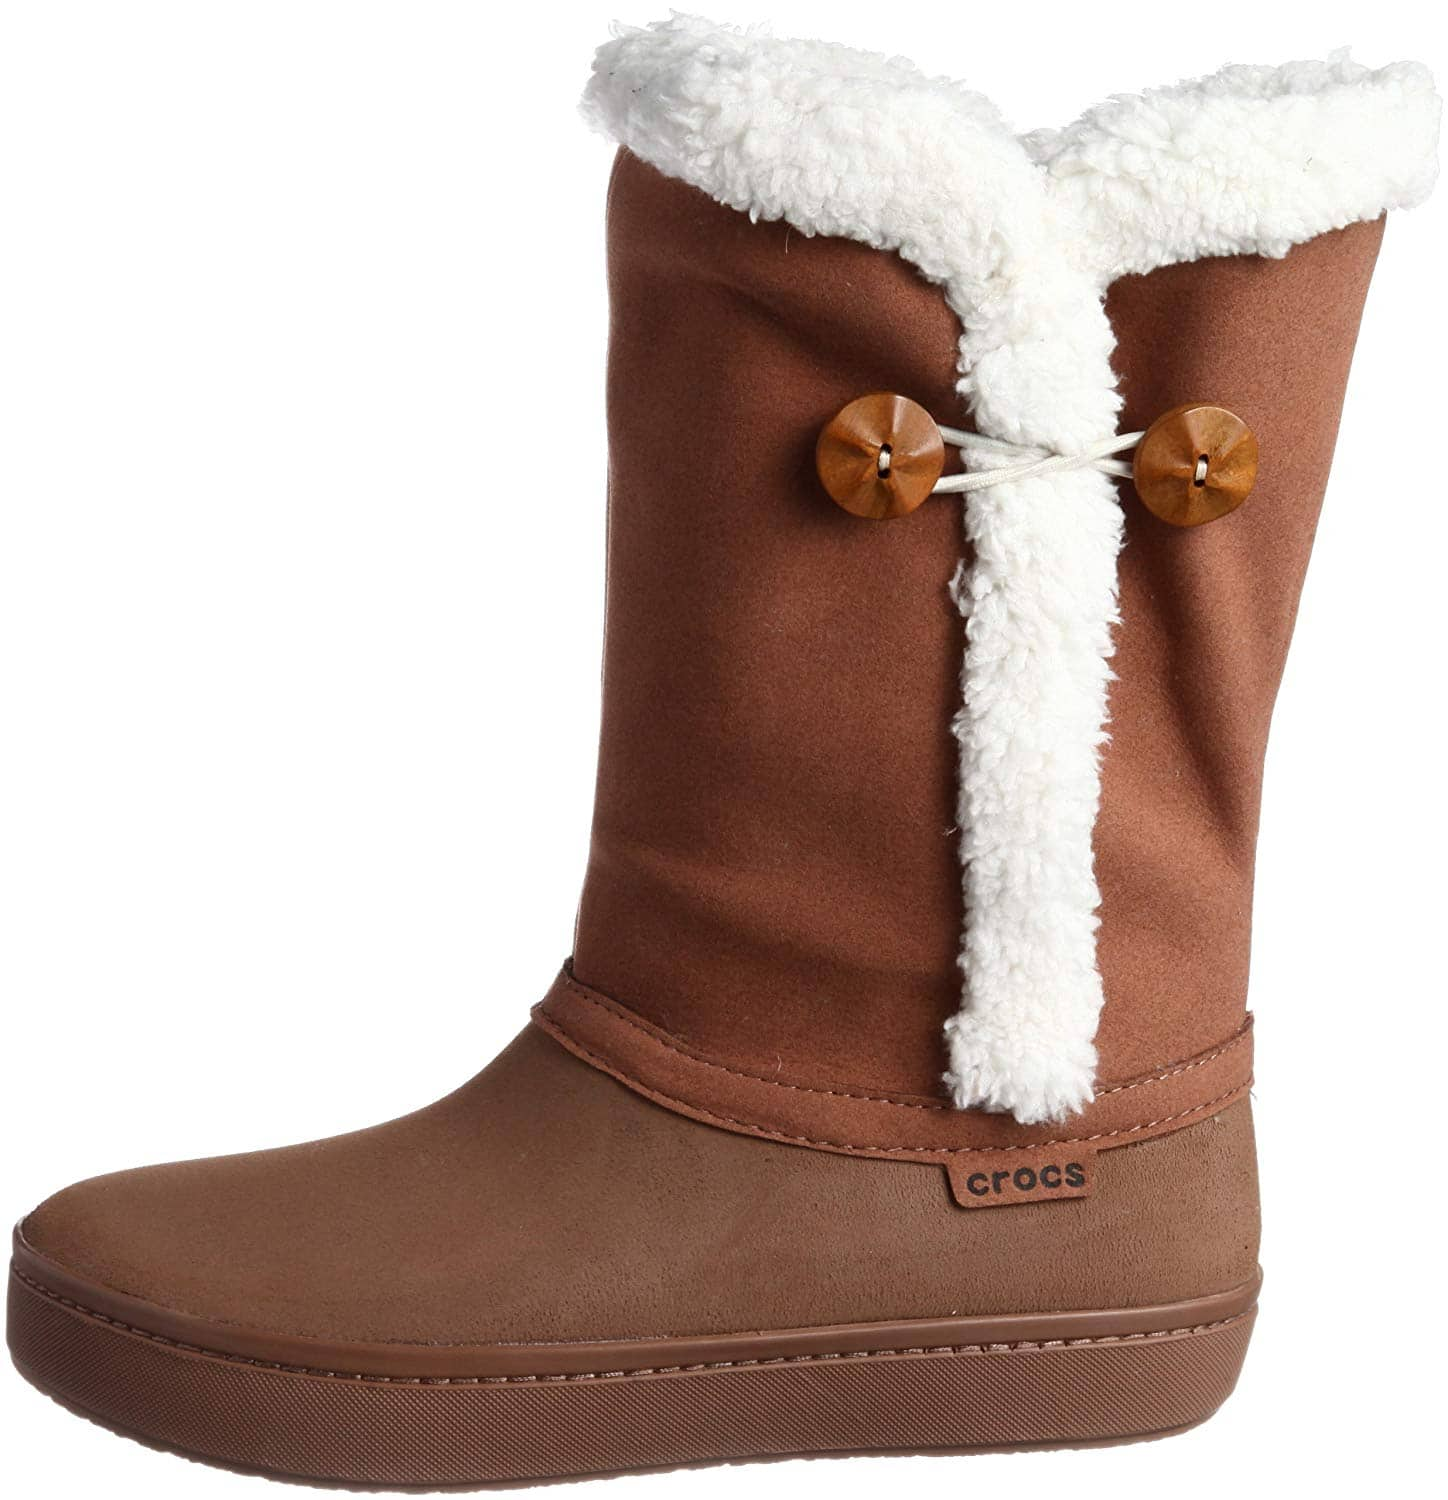 320dfde1fddfb Crocs Winter Boots Clearance Sale on Amazon From $19.99 shipped ...